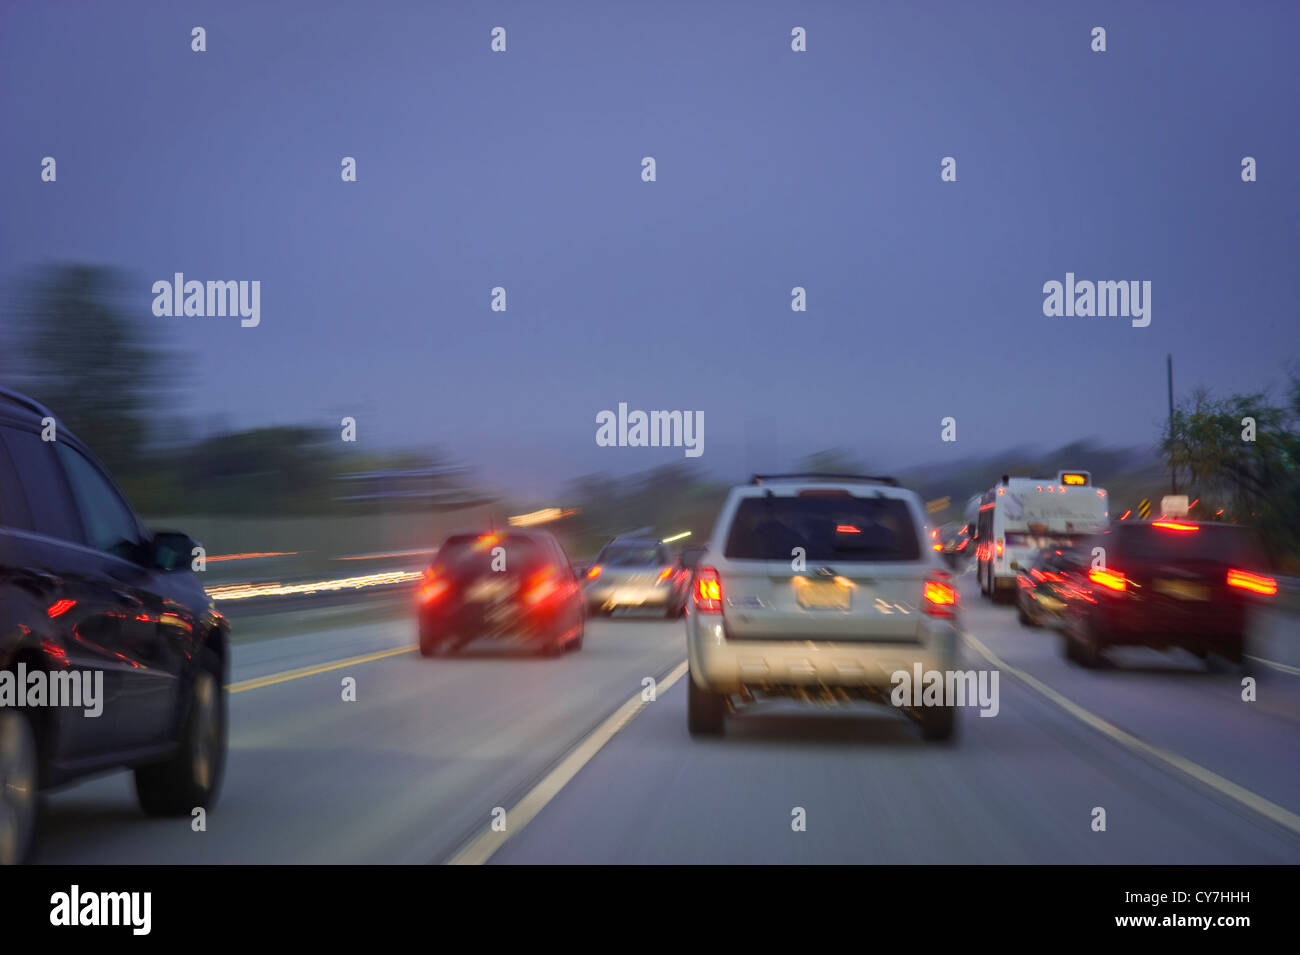 Cars On Highway At Night With Motion Blur - Stock Image